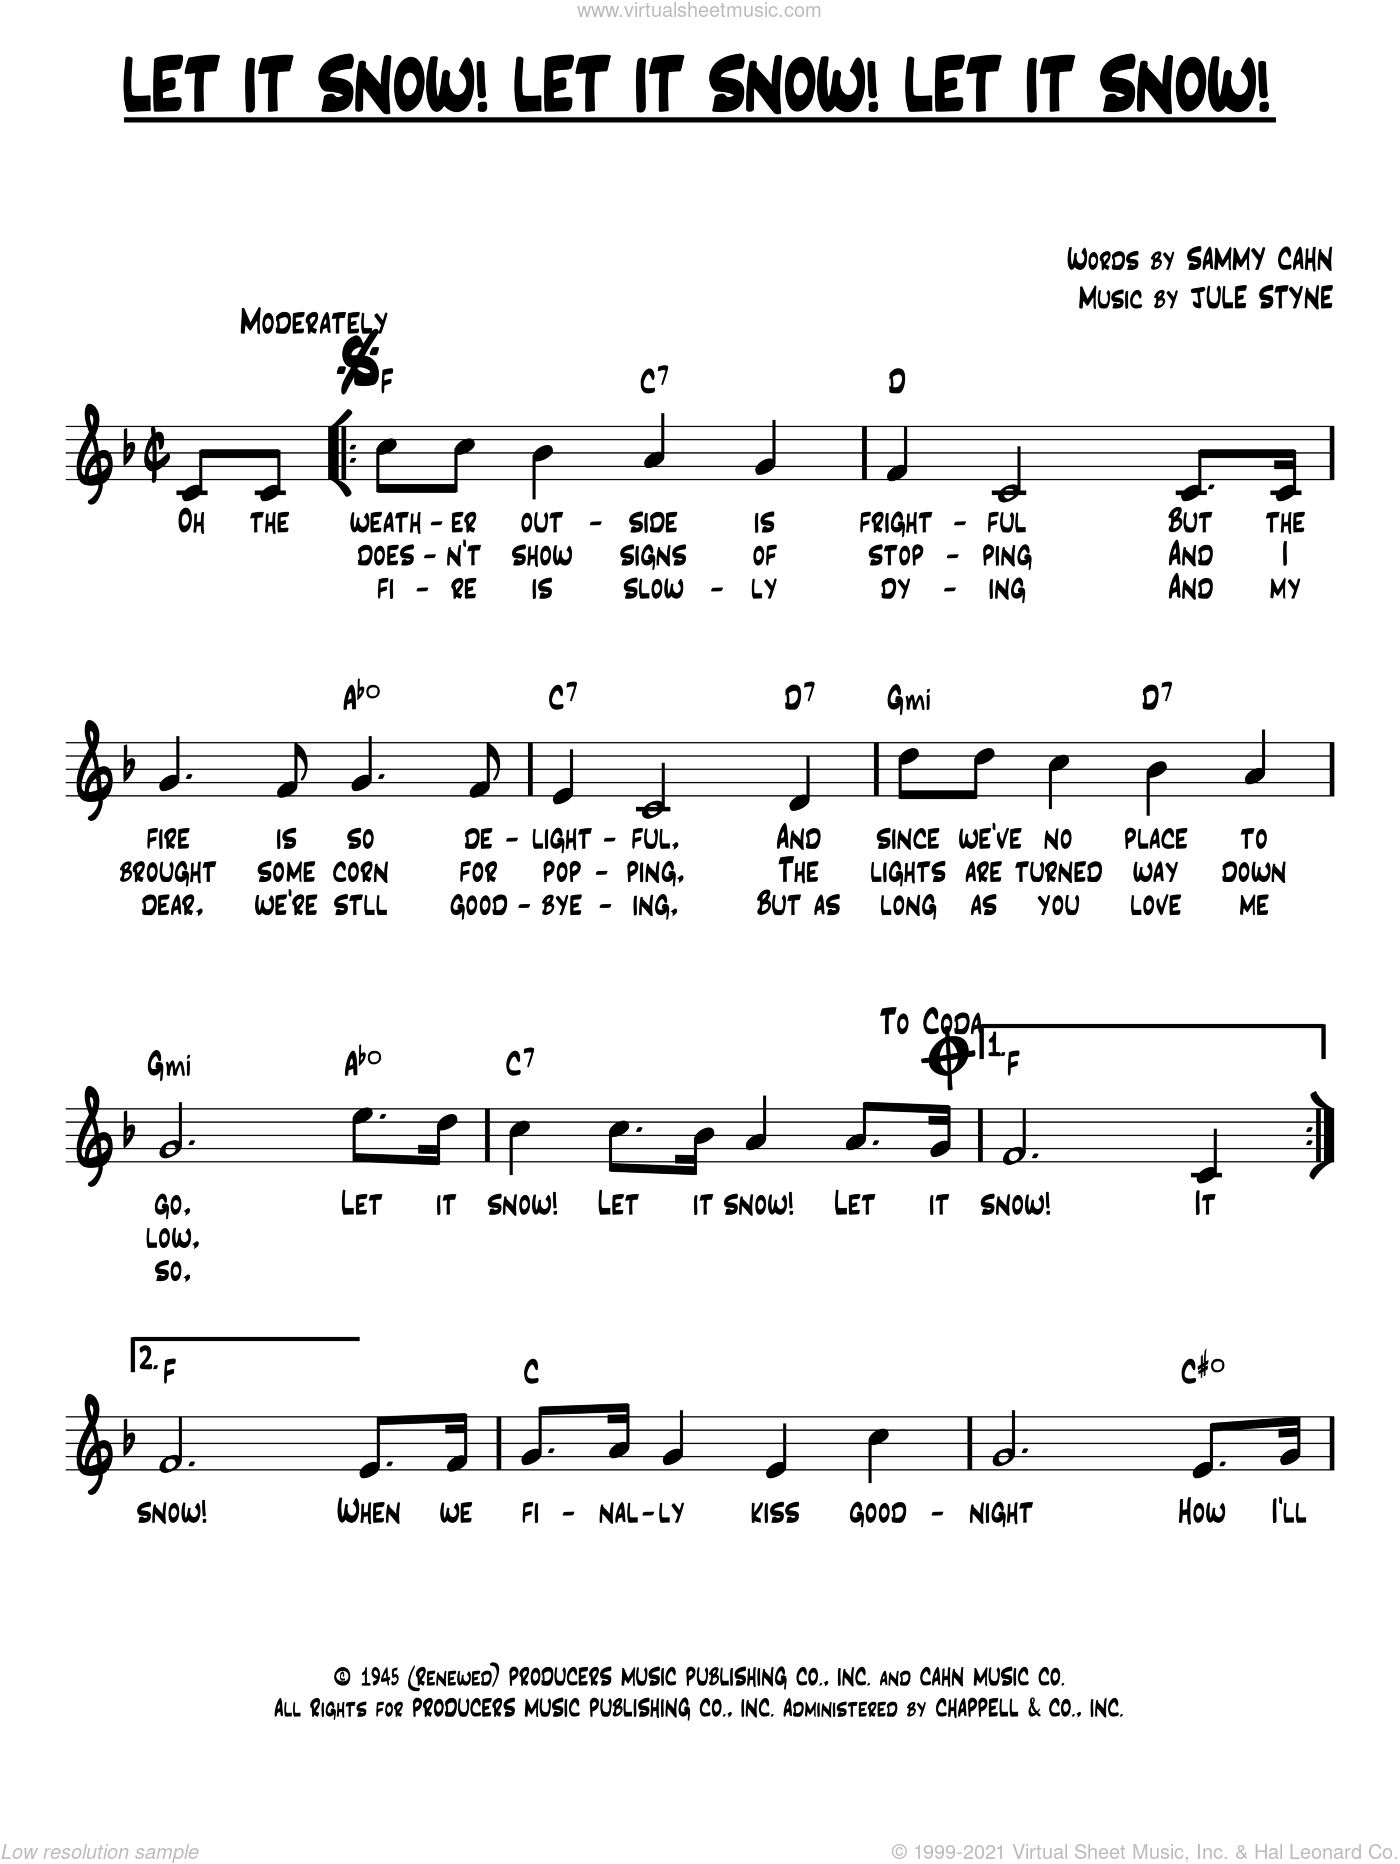 Let It Snow! Let It Snow! Let It Snow! sheet music for voice and other instruments (fake book) by Sammy Cahn and Jule Styne, intermediate skill level